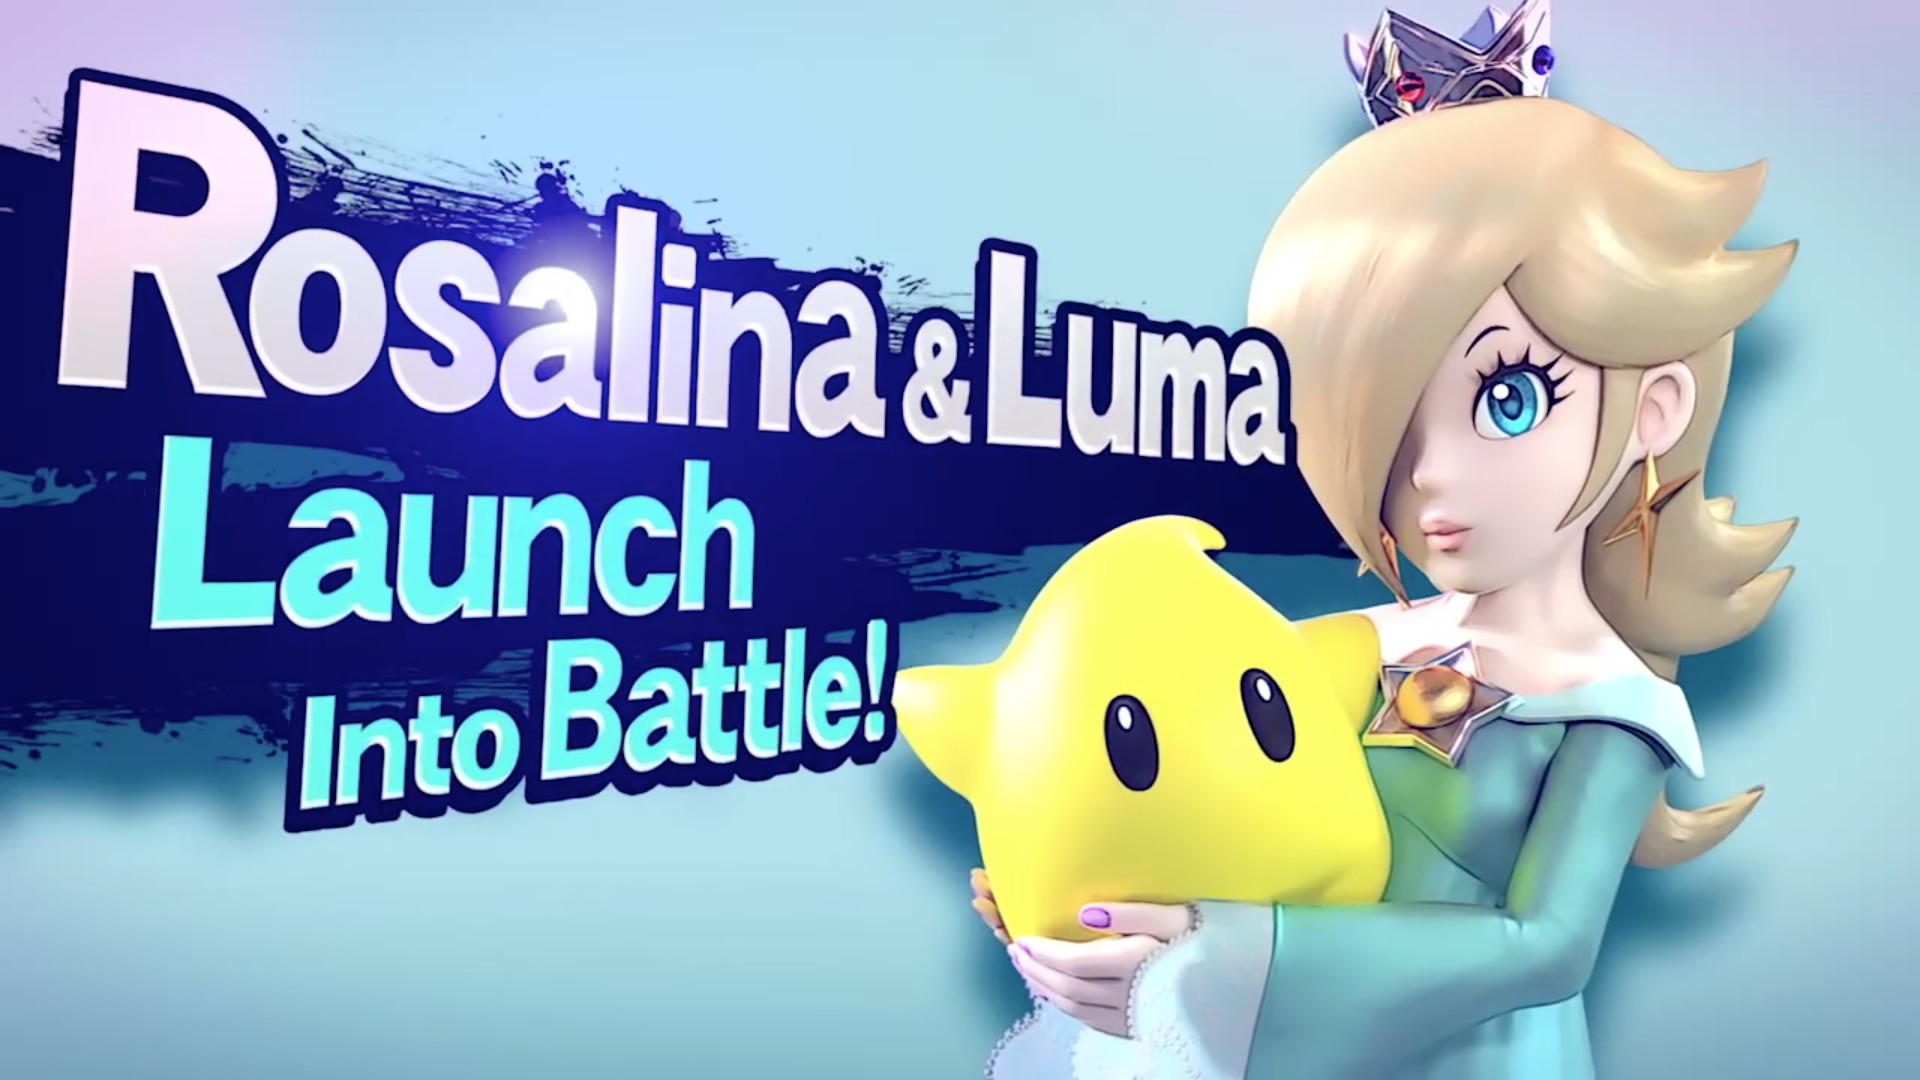 1920x1080 Rosalina & Luma join the battle! (Image: taken from Rosalina's Smash  trailer)